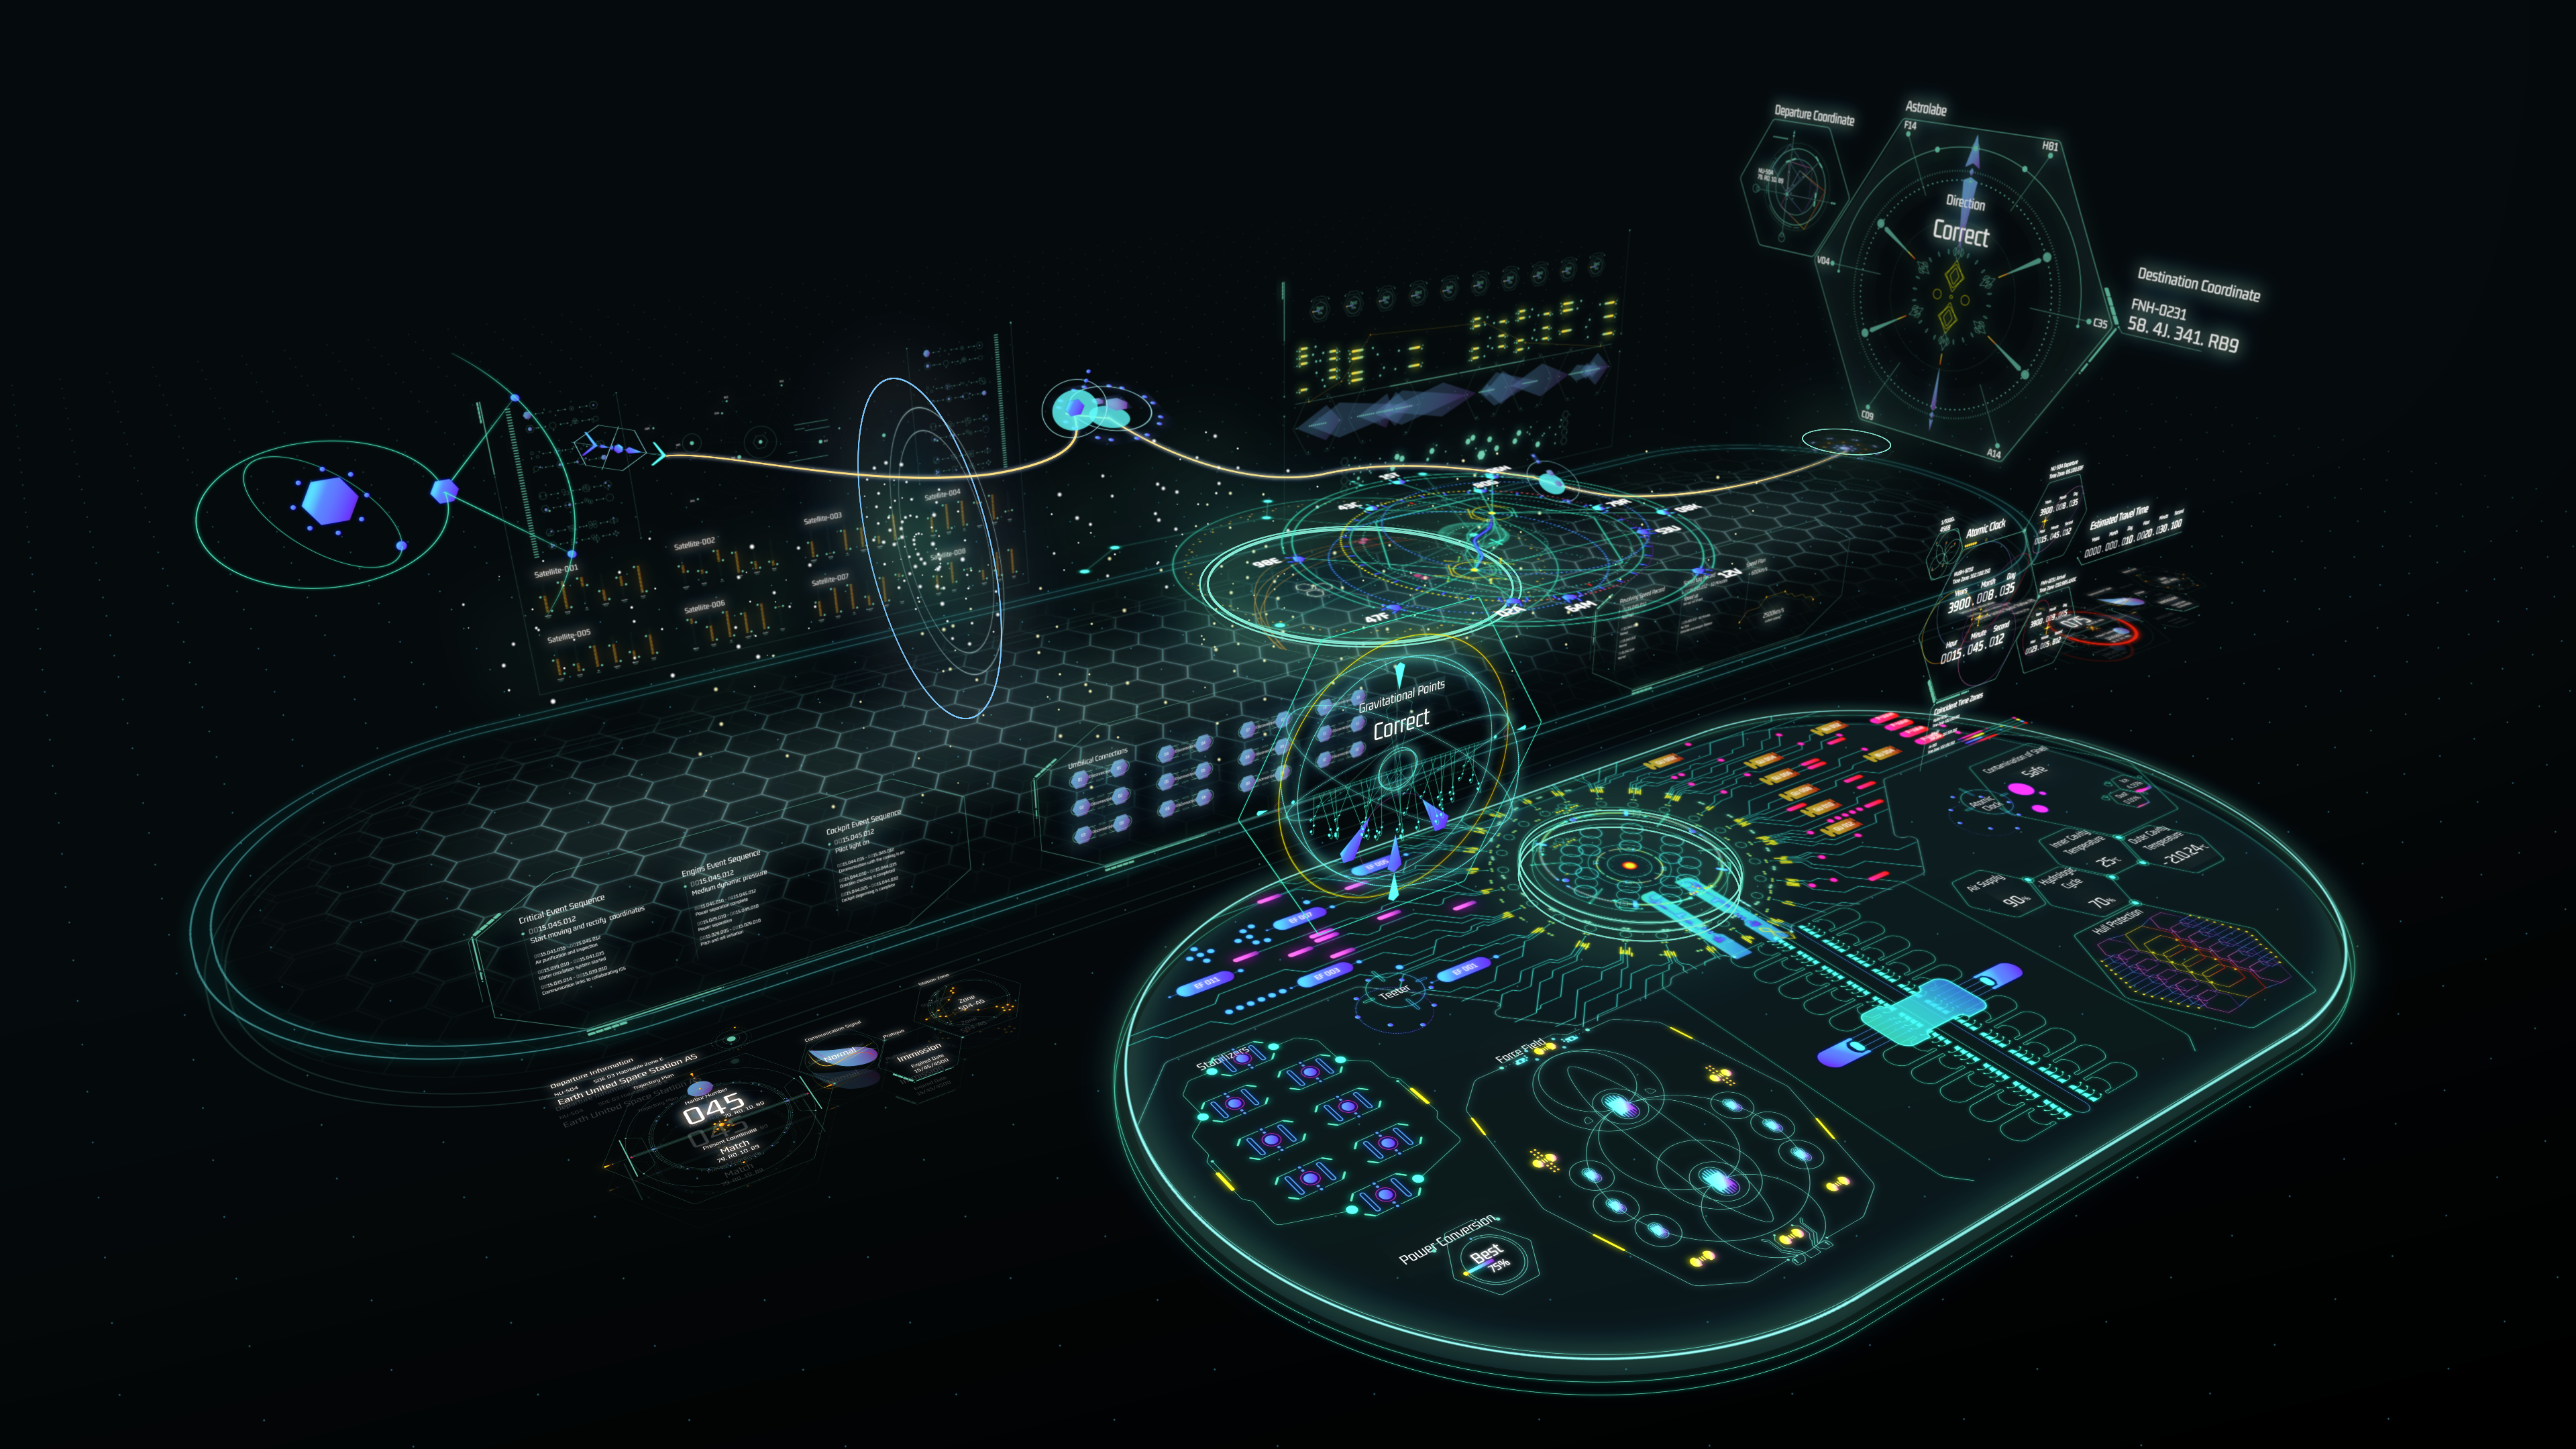 Thesis Project | Sci-fi UI Design Interstellar Map for Space Travel